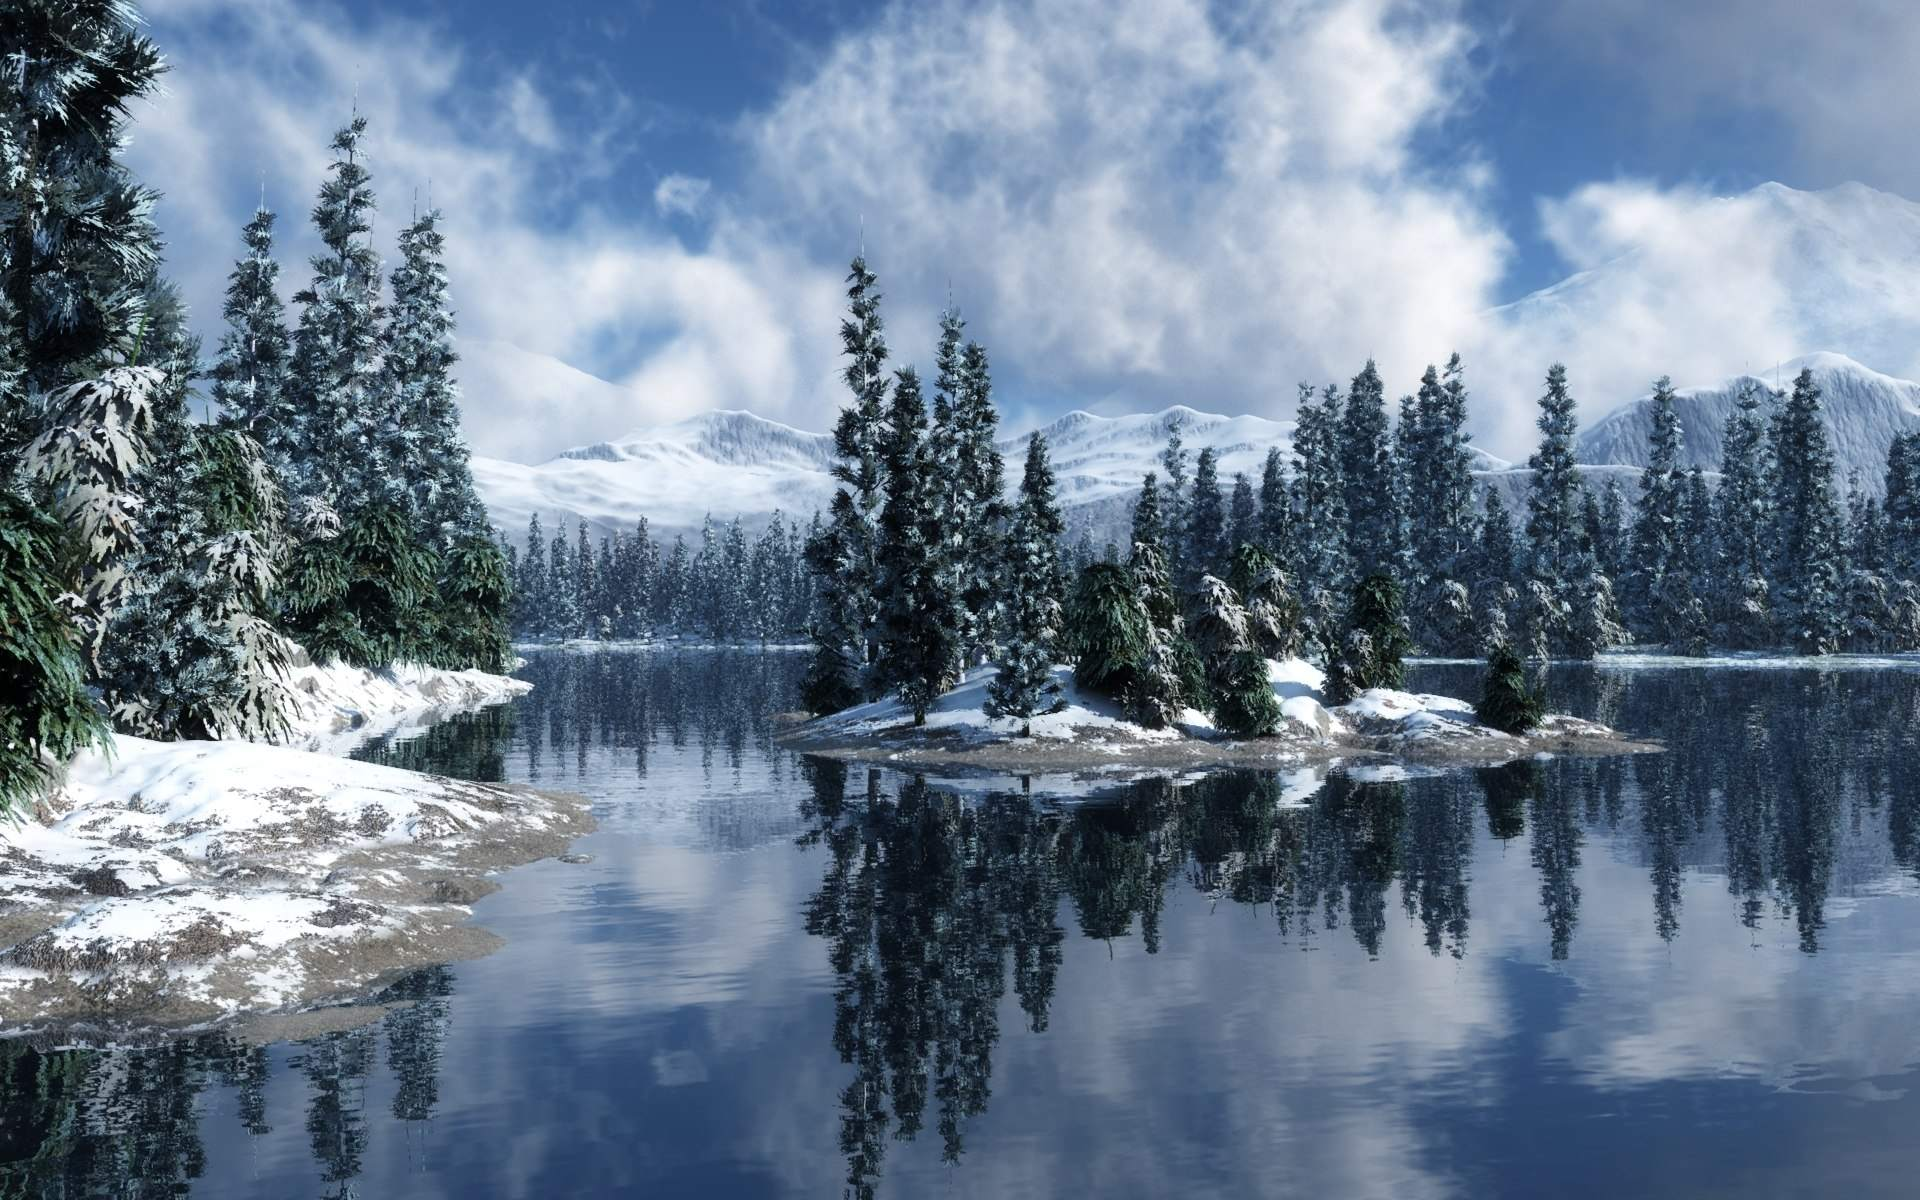 Download Snow Wallpapers wallpaper Snowy Forest 1920x1200